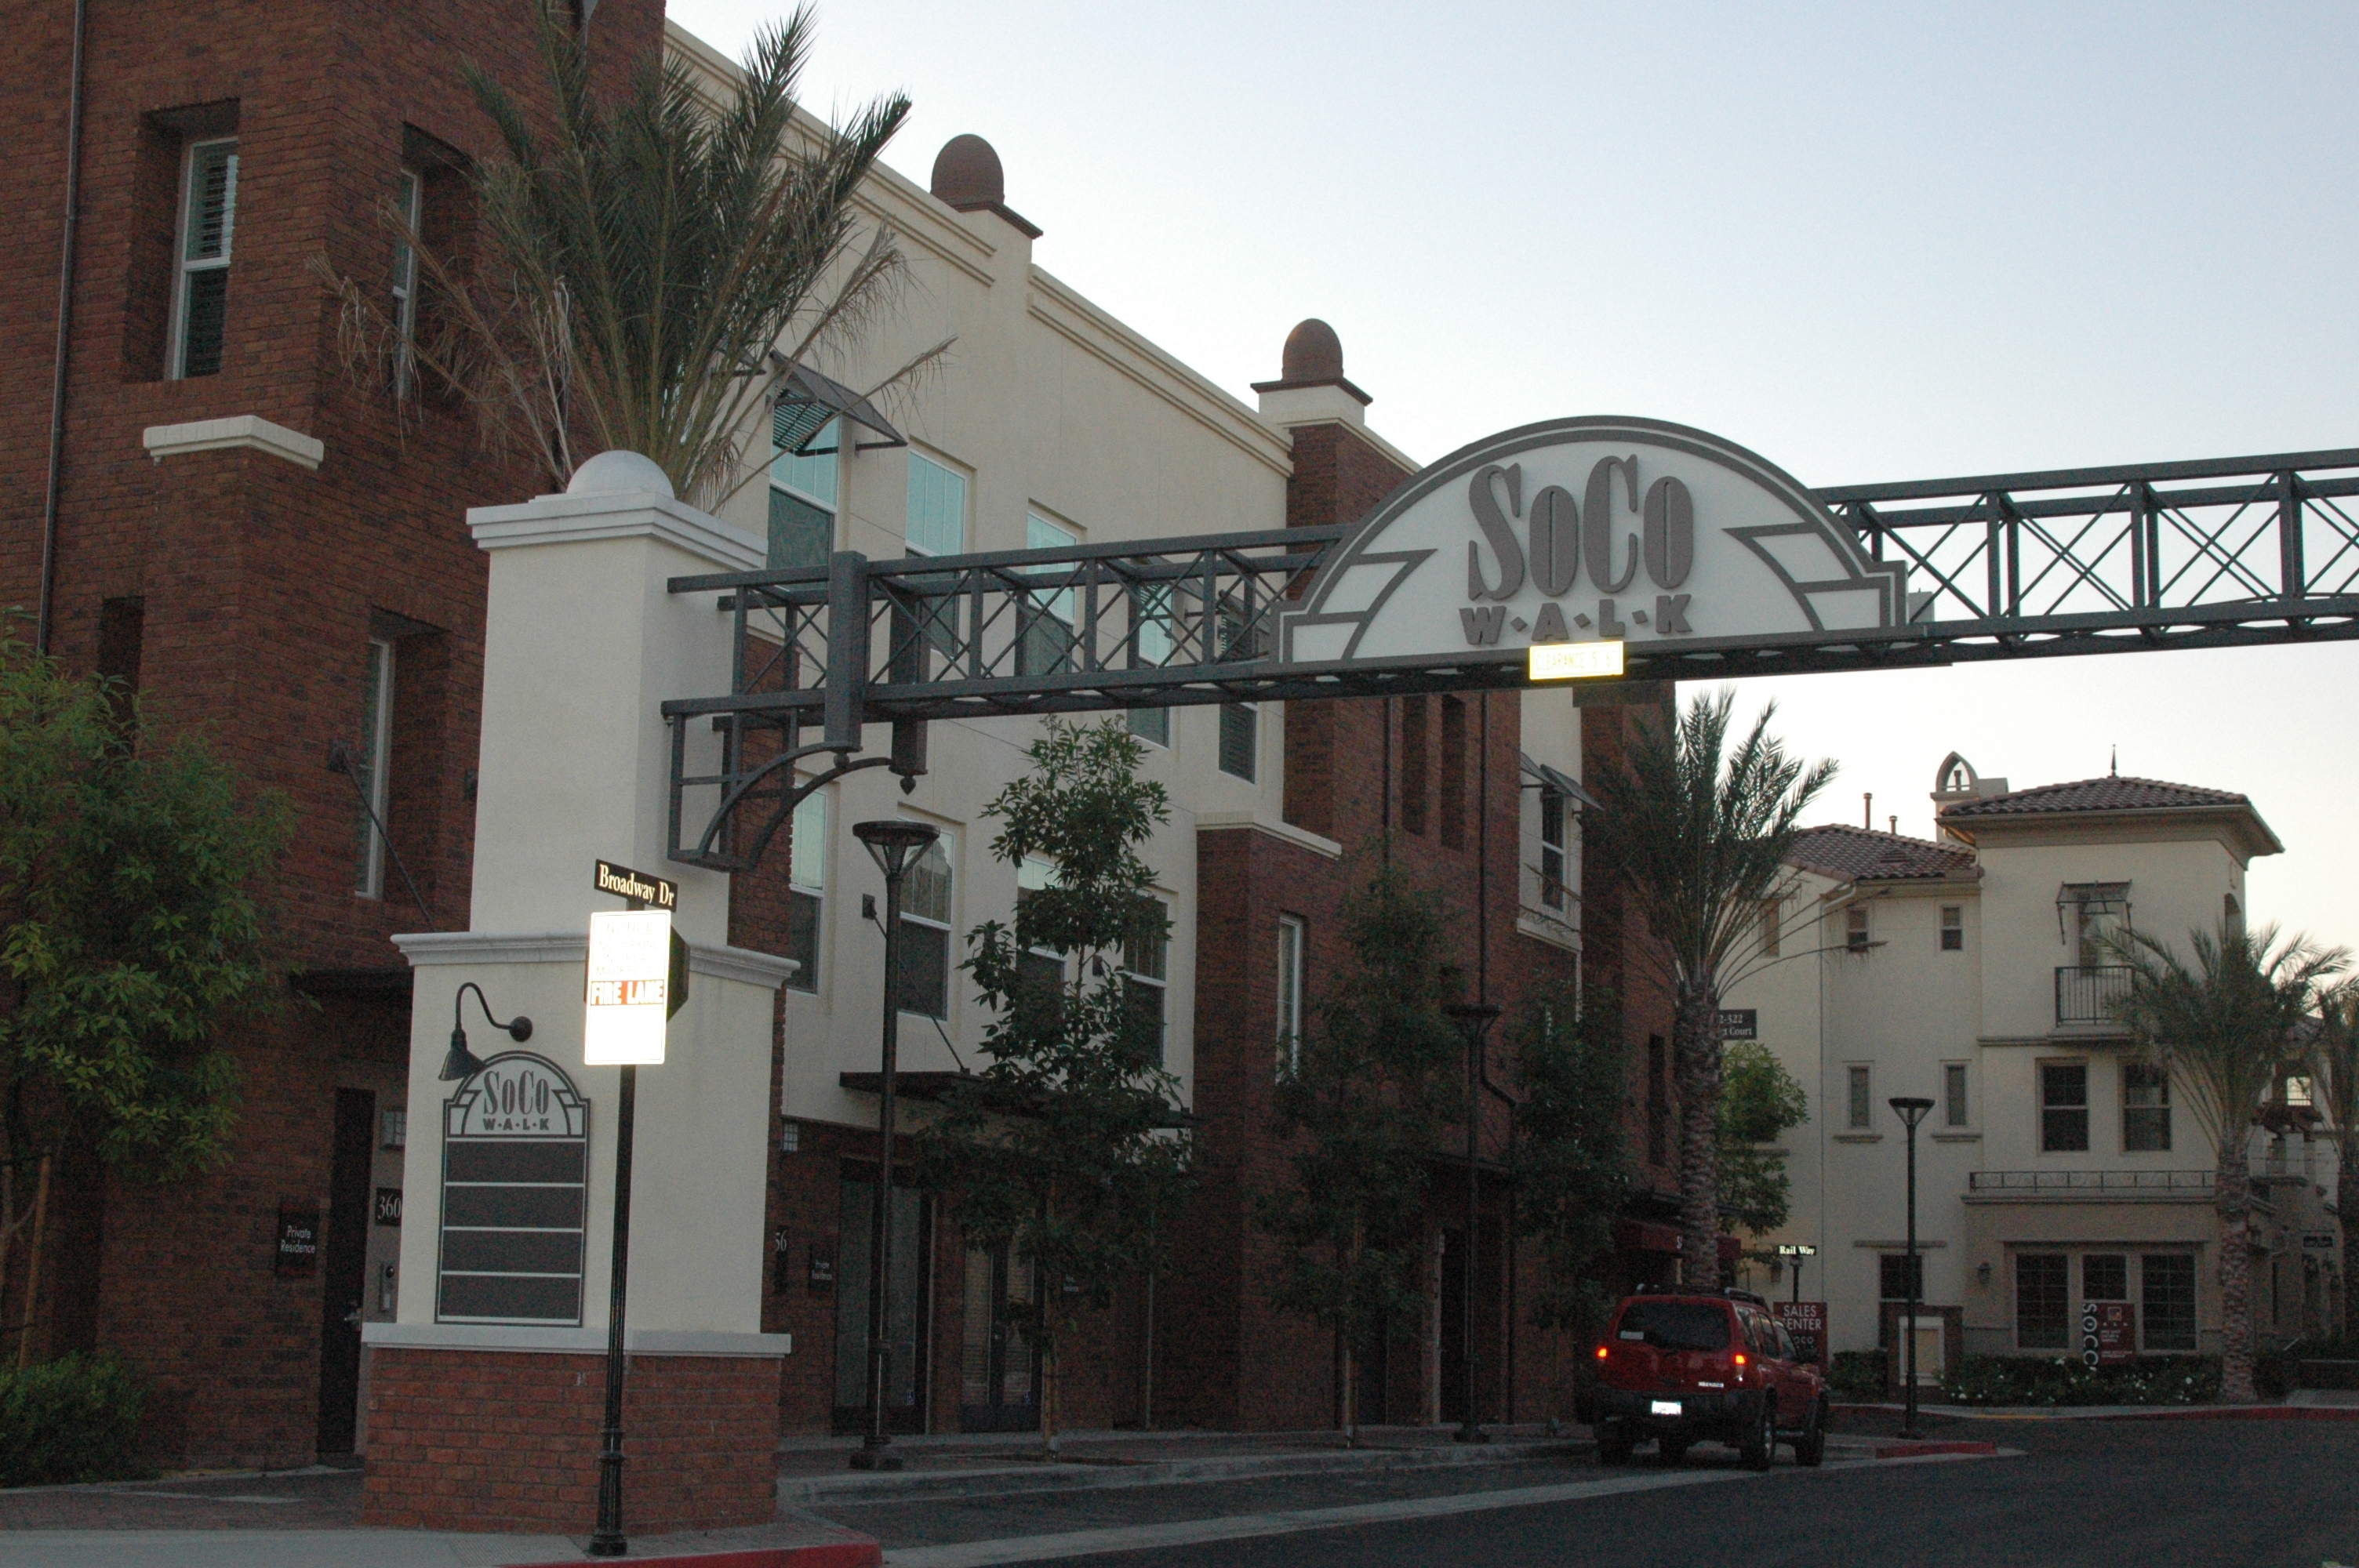 I recently met the developer of the Socowalk project, Tony Bushala, in Fullerton. He had an interesting tale to tell about Socowalk. He said that he started to buy the […]